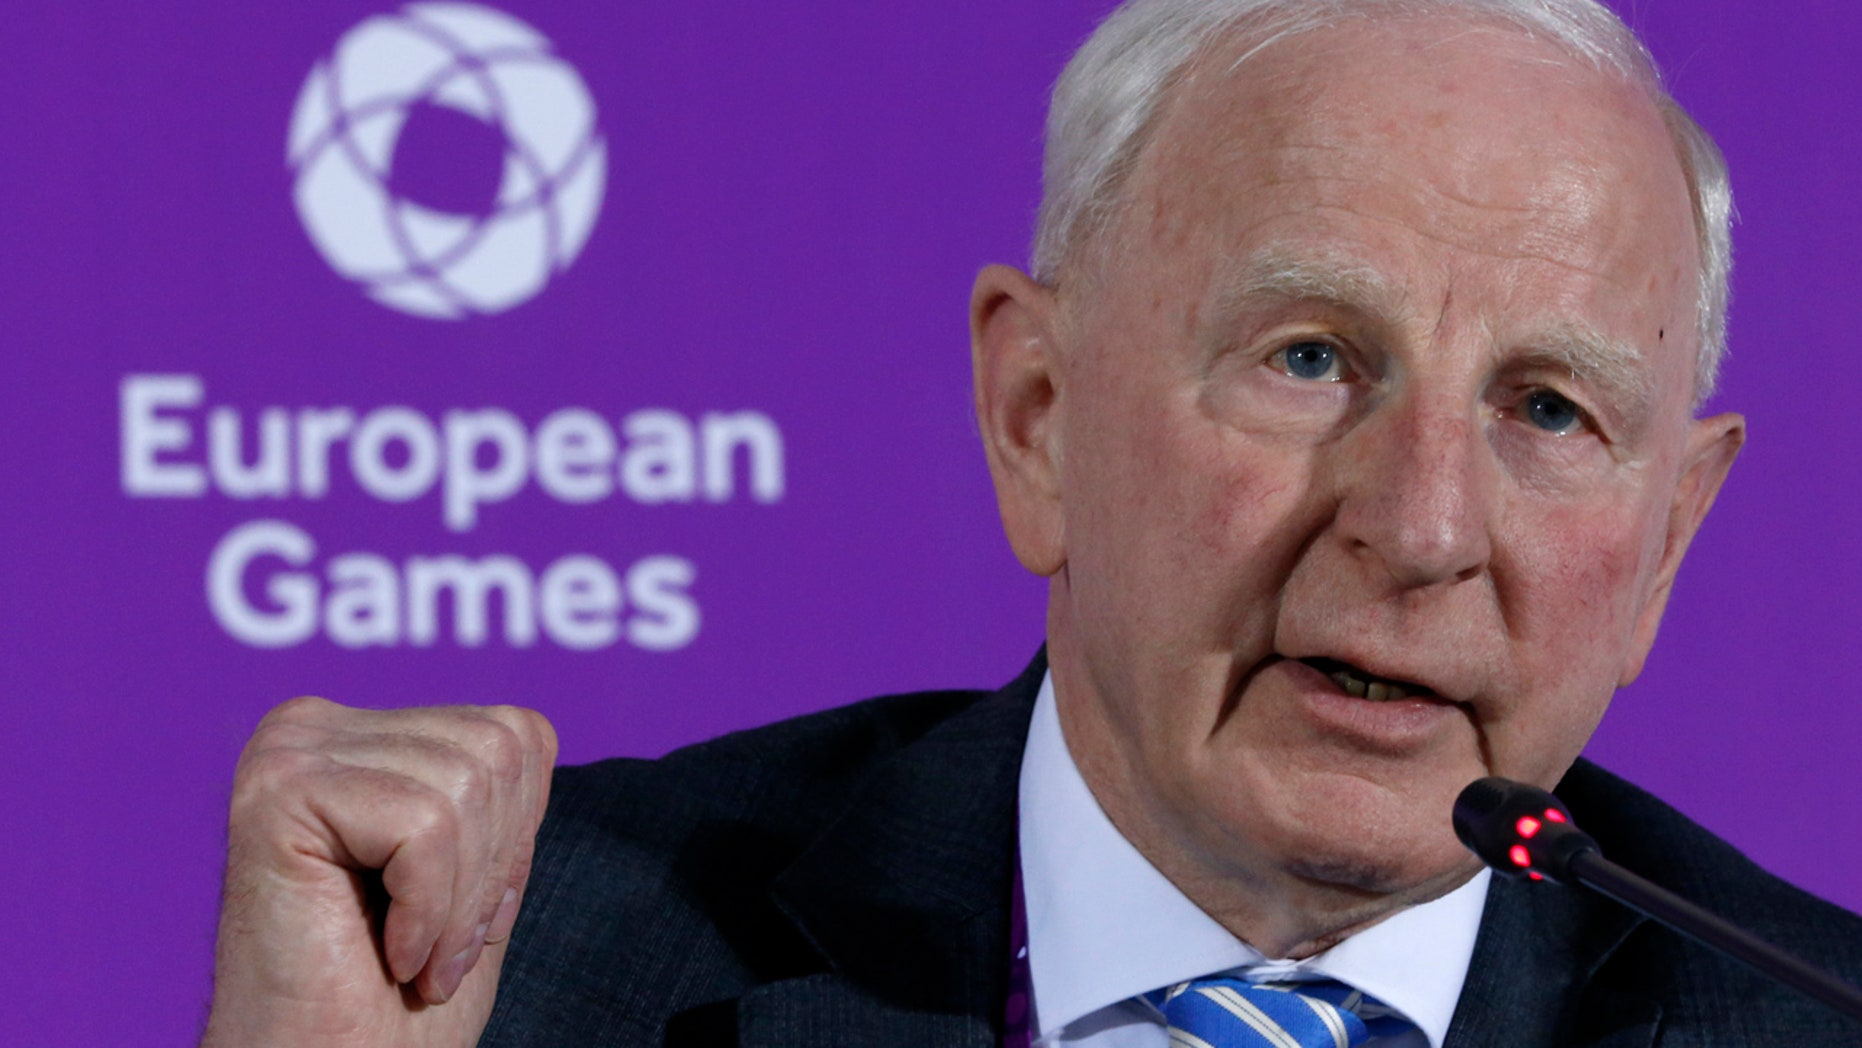 June 11, 2015: Patrick Hickey, the head of the European Olympic Committee, speaks during a news conference on the eve of the opening of the 2015 European Games in Baku, Azerbaijan.